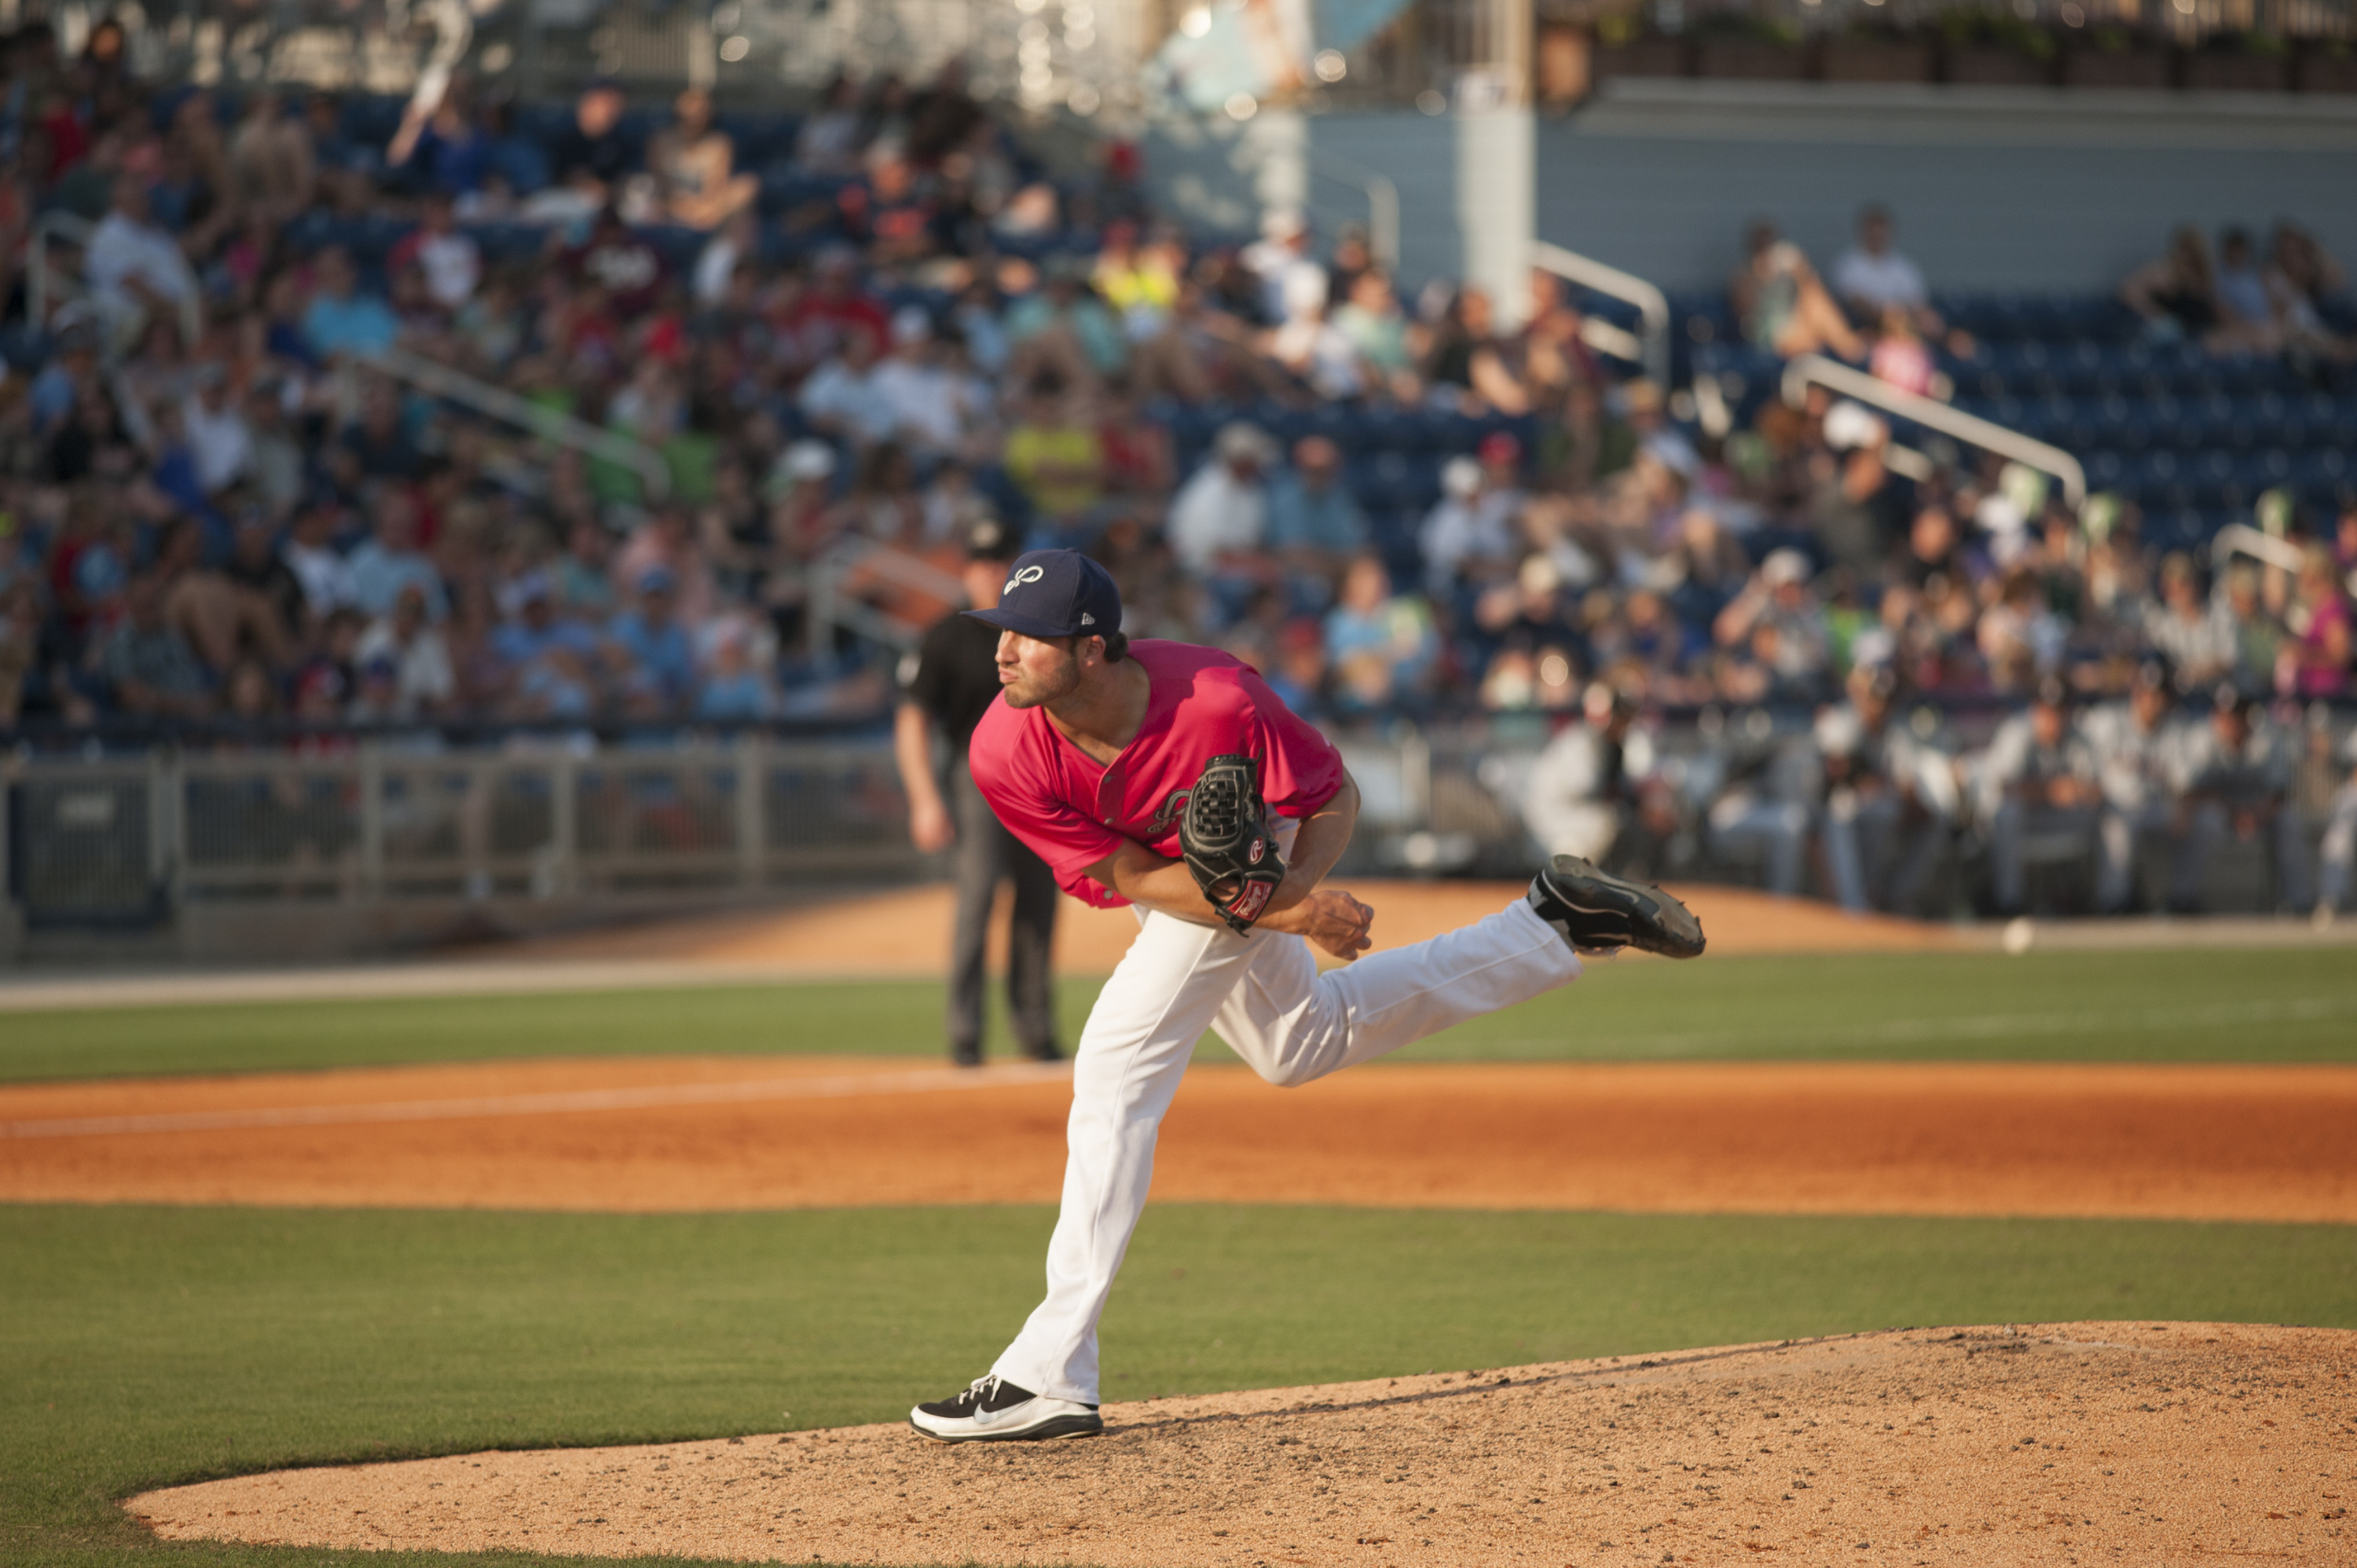 Tim  Adleman went 9-10 with a 2.64 ERA and 113 strikeouts for the Pensacola Blue Wahoos.